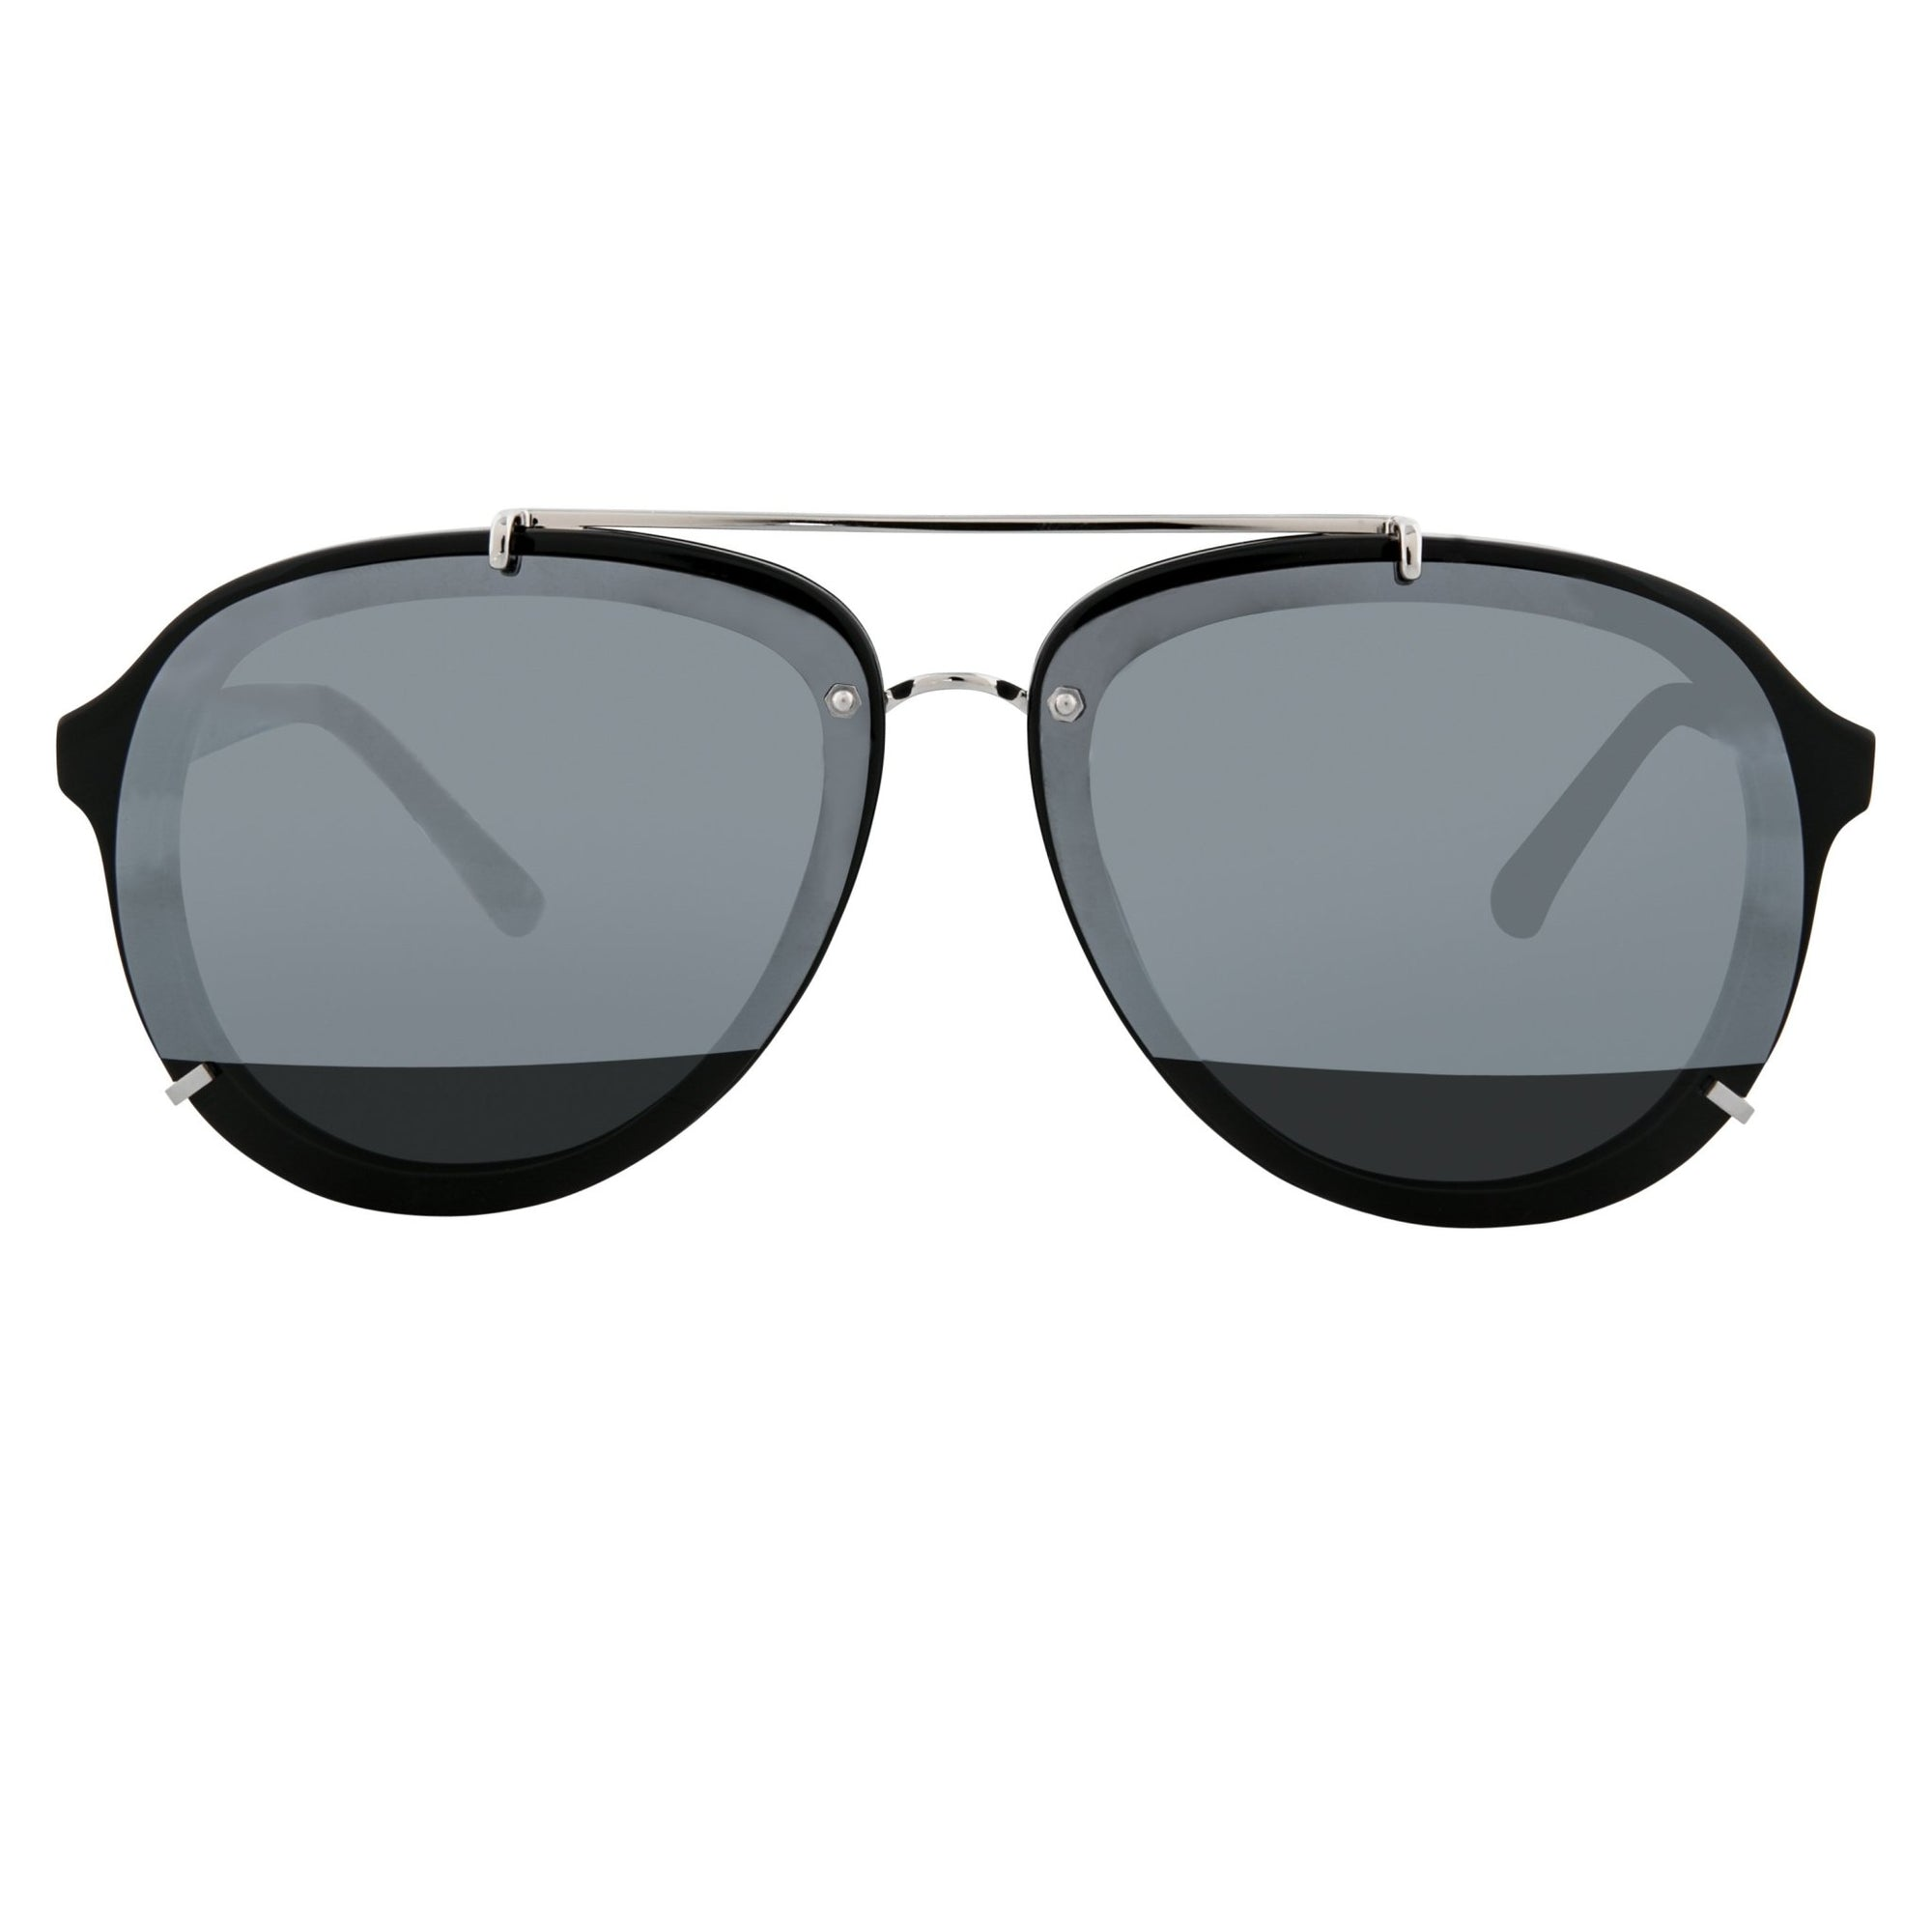 Phillip Lim Sunglasses Unisex Black and Silver Aviator with Silver Mirror to Black Lenses Category 4 - PL162C9SUN - Watches & Crystals